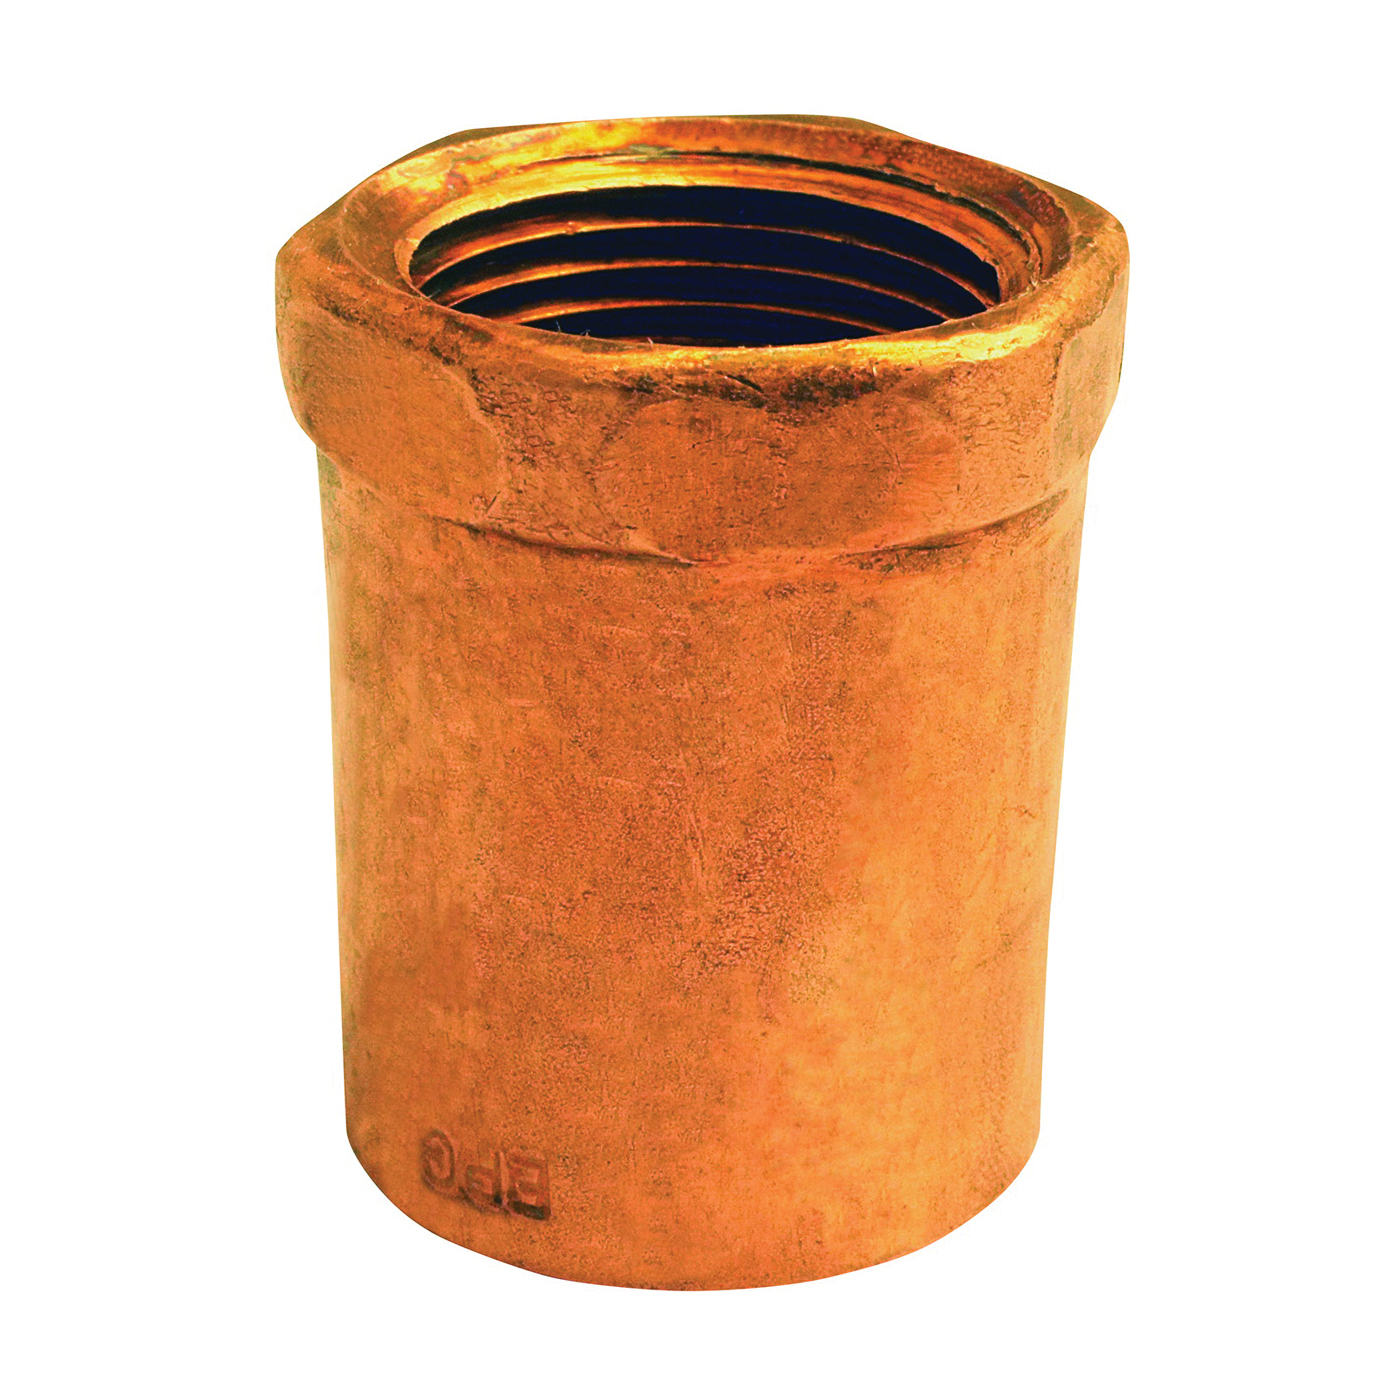 Picture of EPC 103R Series 30124 Reducing Adapter, 3/8 x 1/2 in, Sweat x FNPT, Copper